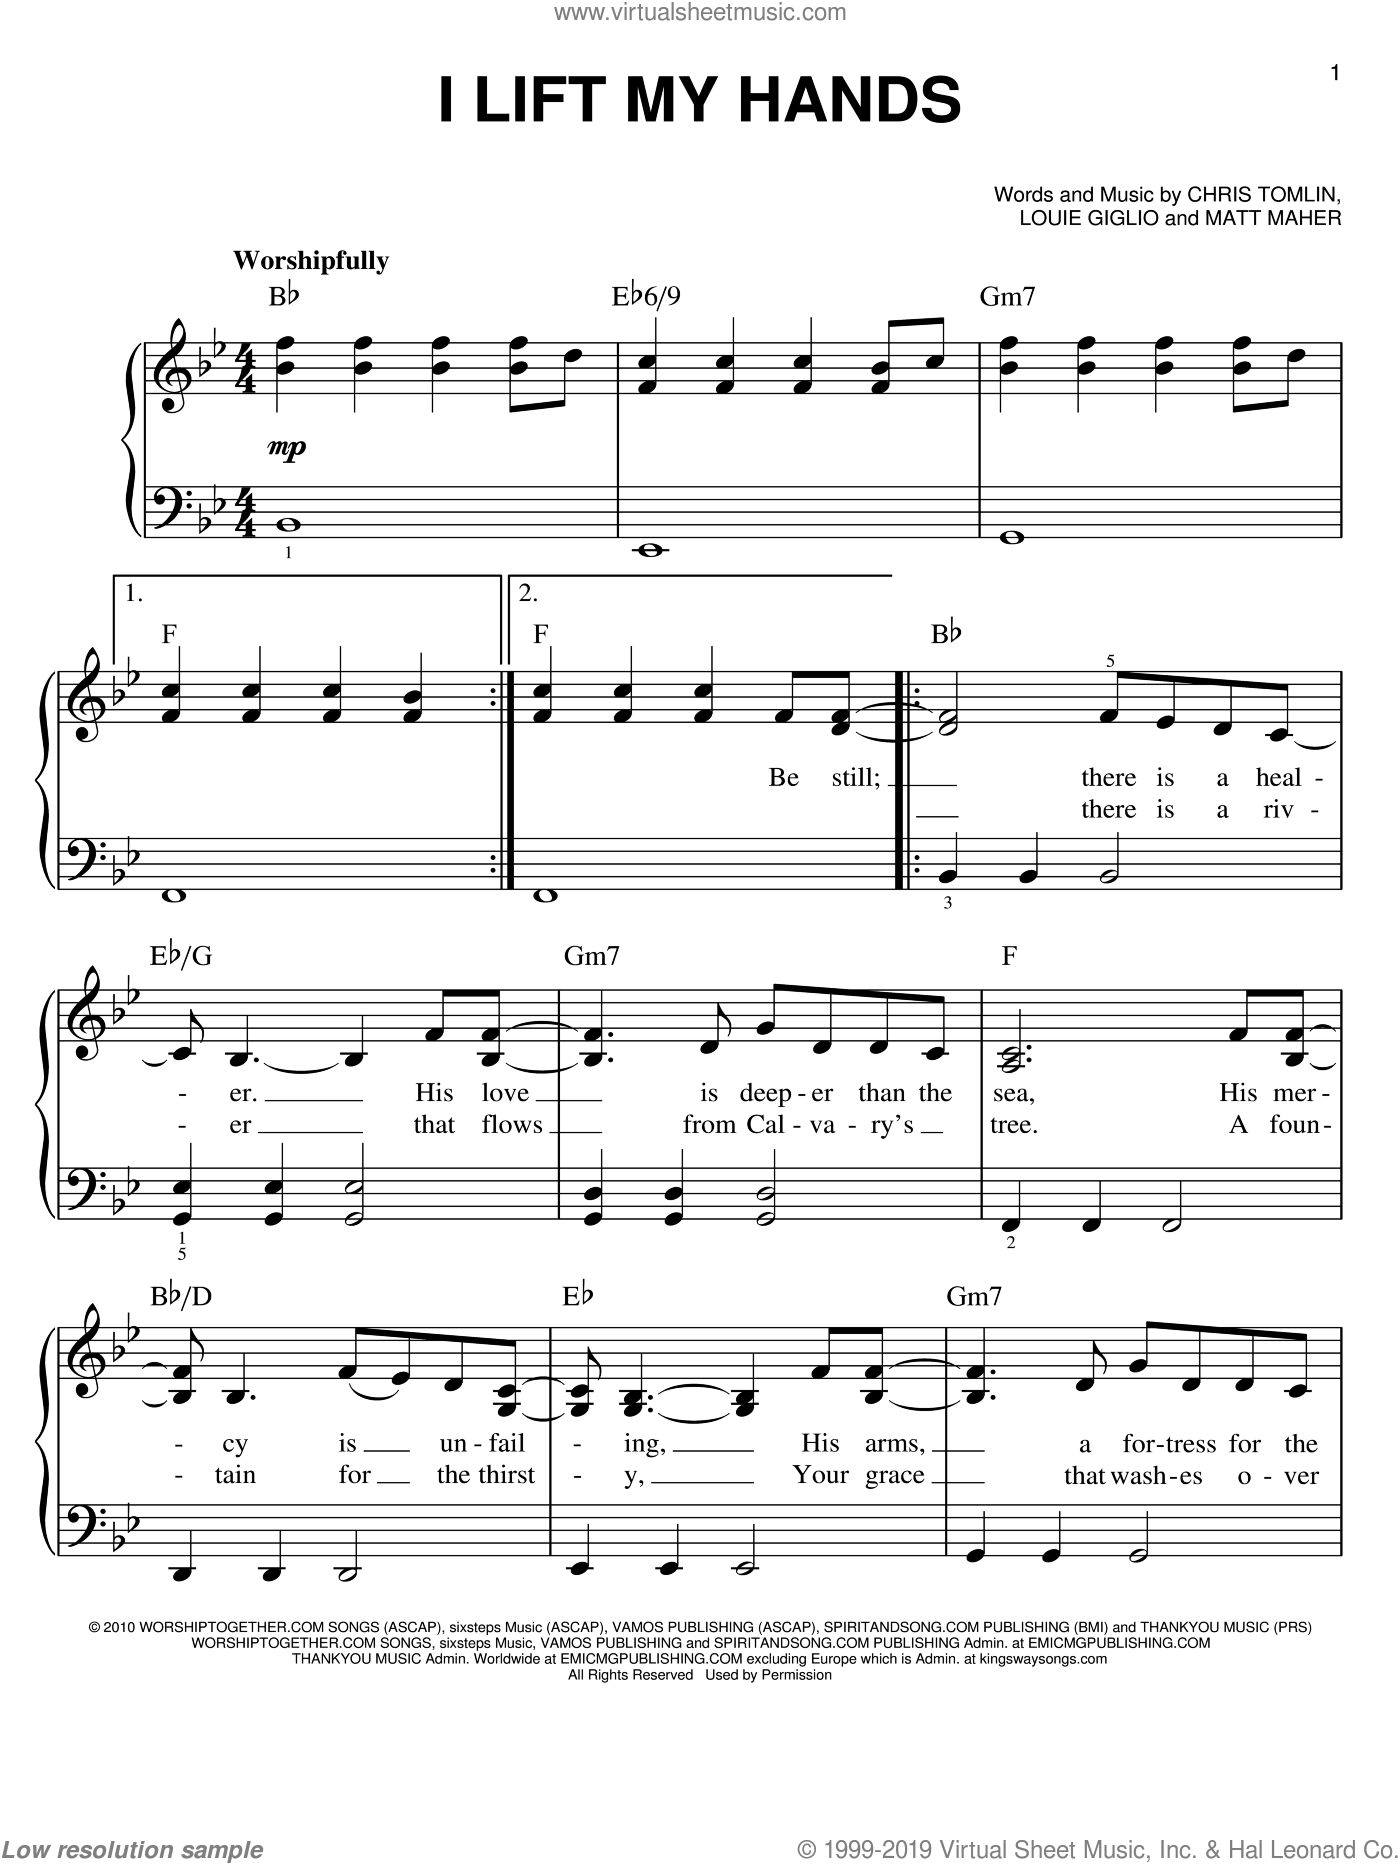 I Lift My Hands sheet music for piano solo by Chris Tomlin, Louis Giglio and Matt Maher, easy skill level